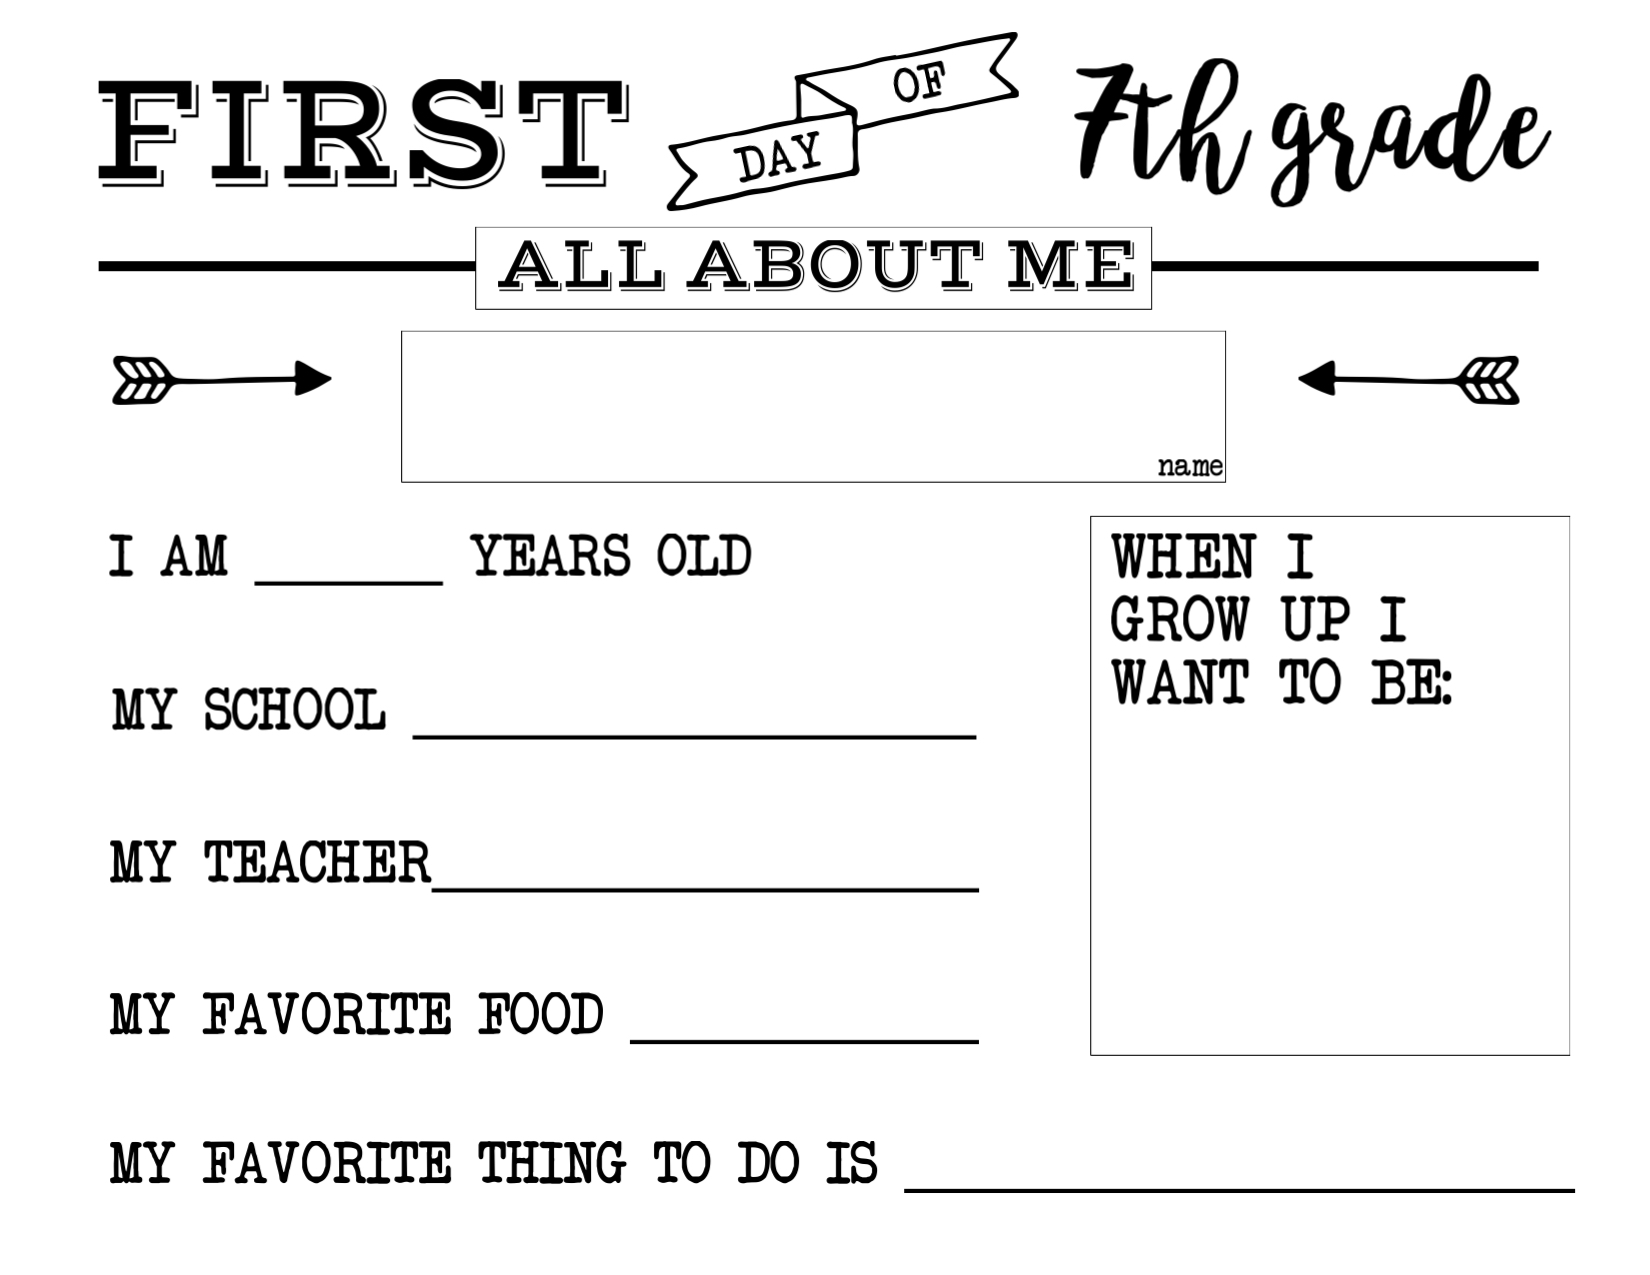 First Day of School All About Me Sign Paper Trail Design – First Day of School Worksheet